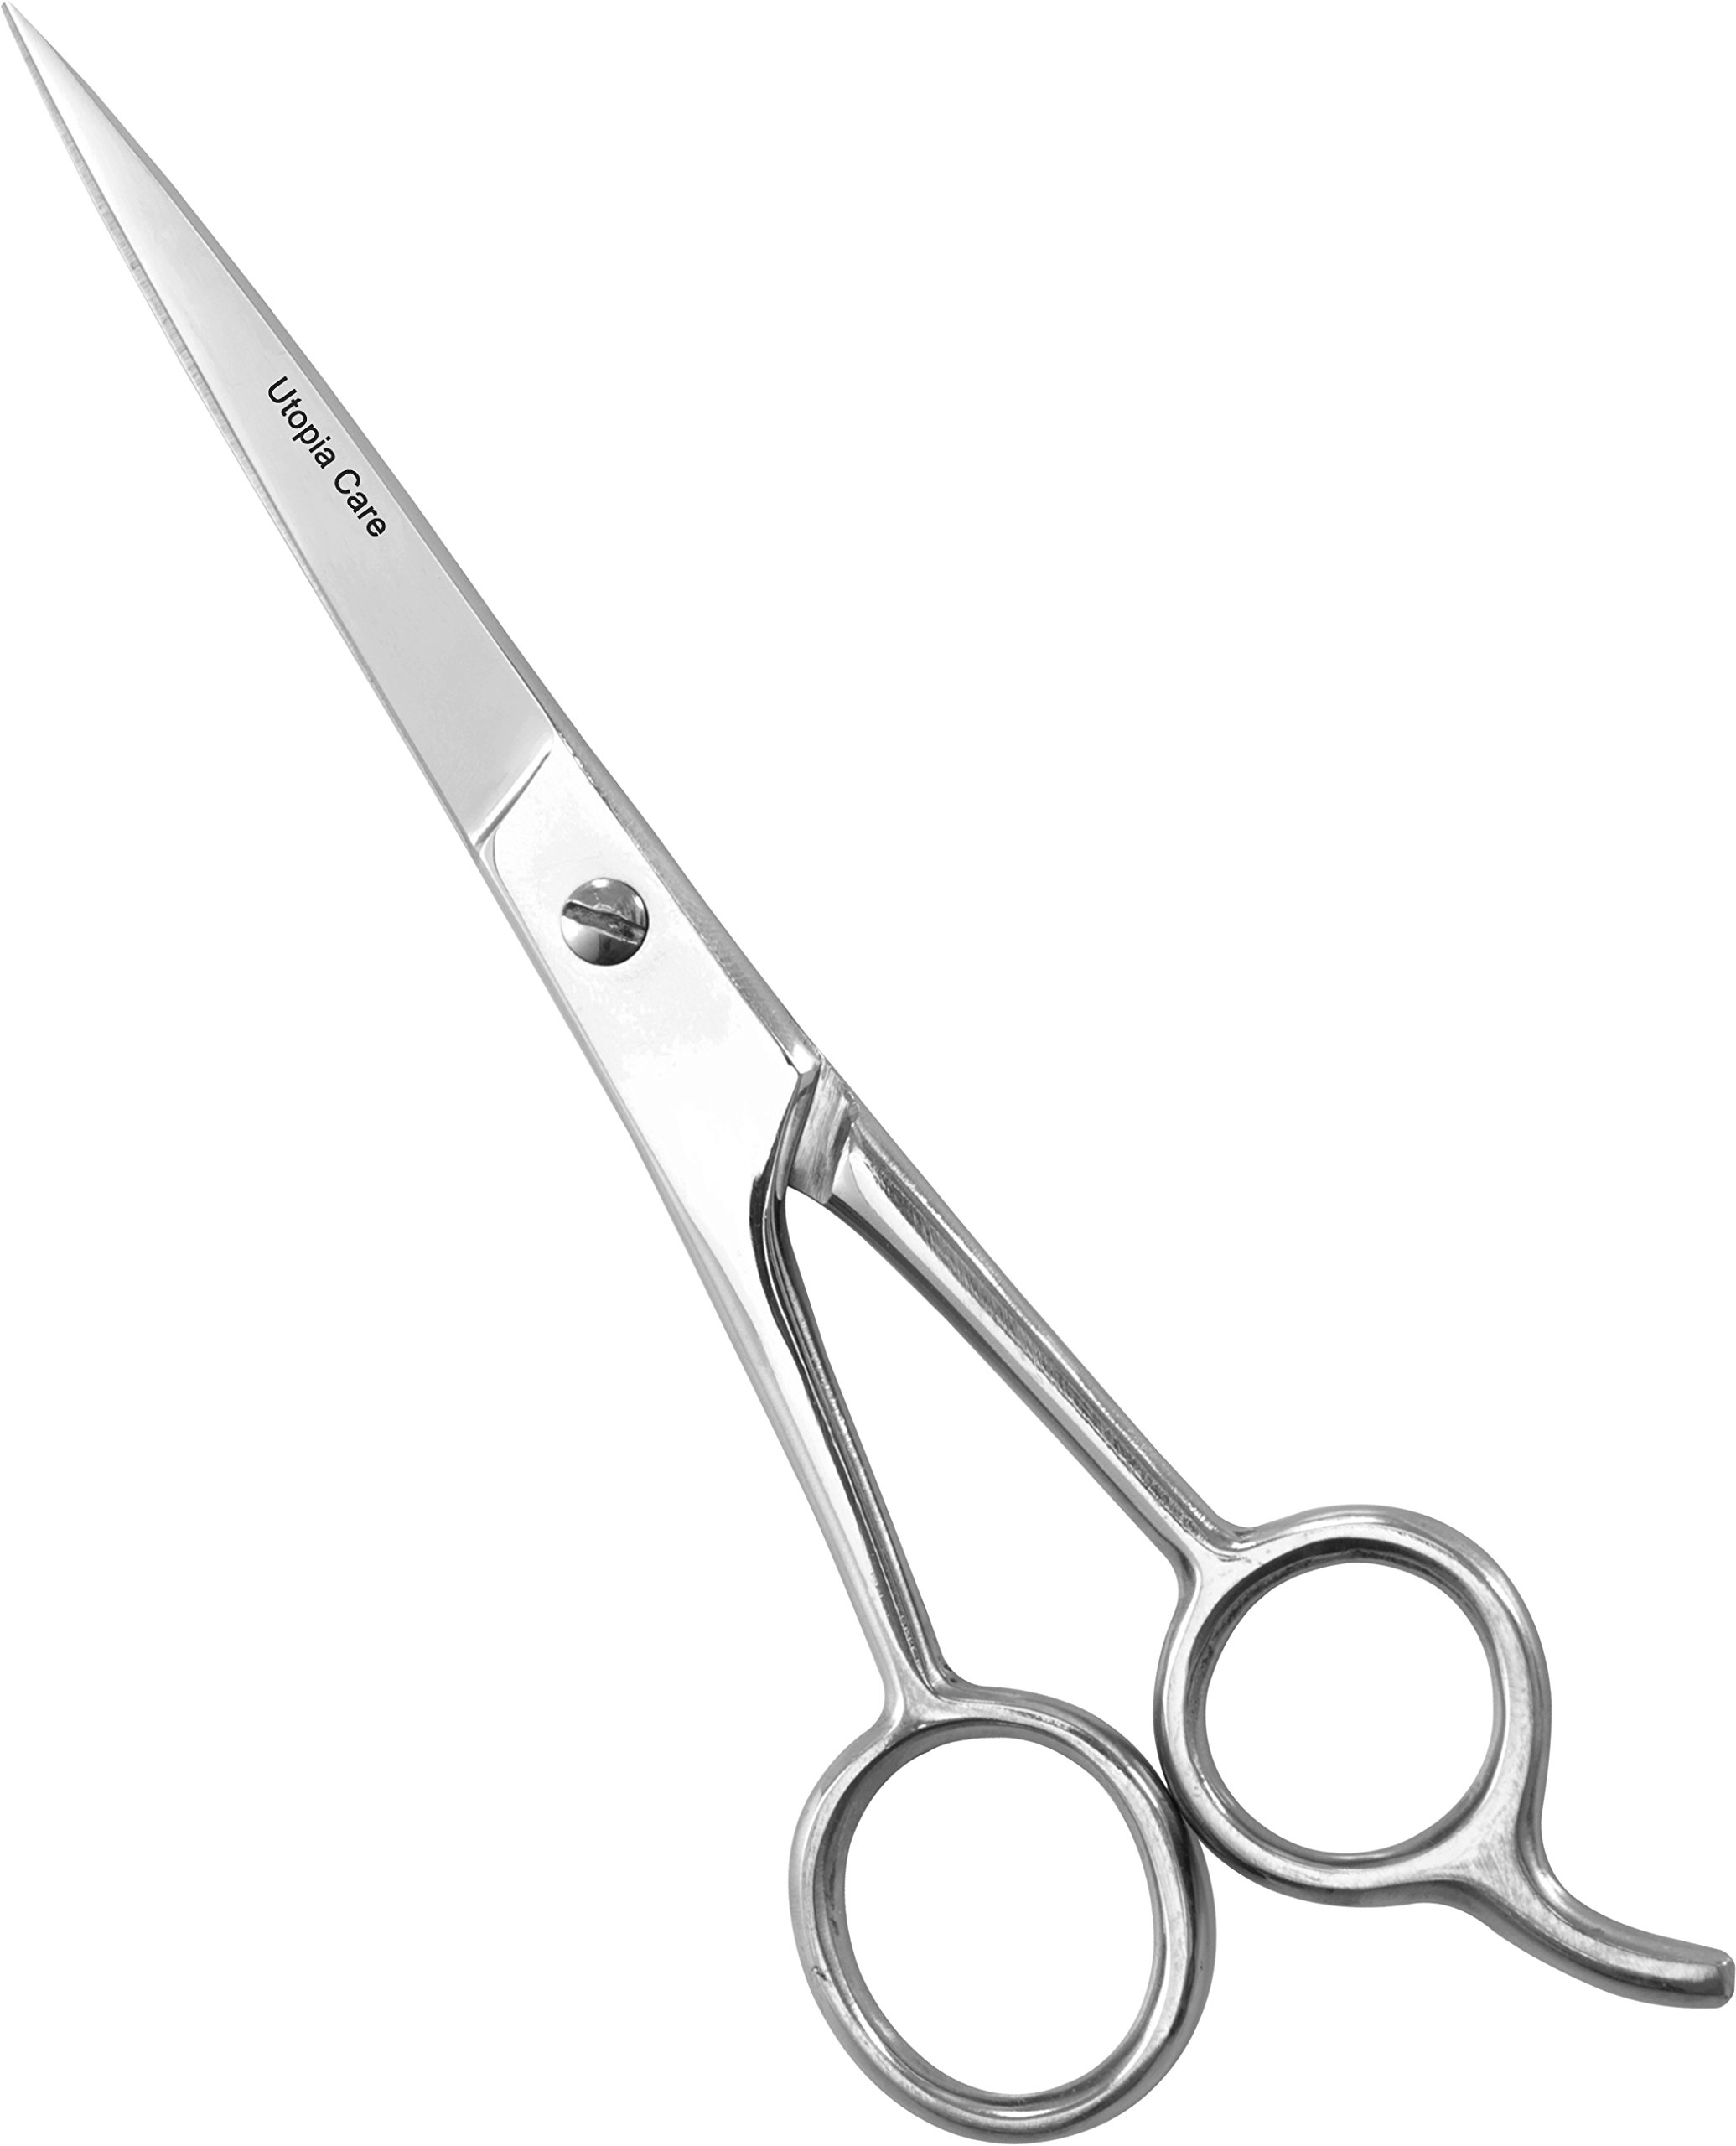 Professional Barber/Salon Razor Edge Hair Cutting Scissors / Shears (6.5-Inch) - Ice Tempered Stainless Steel Reinforced with Chromium to Resist Tarnish and Rust - by Utopia Care (Silver Shine)